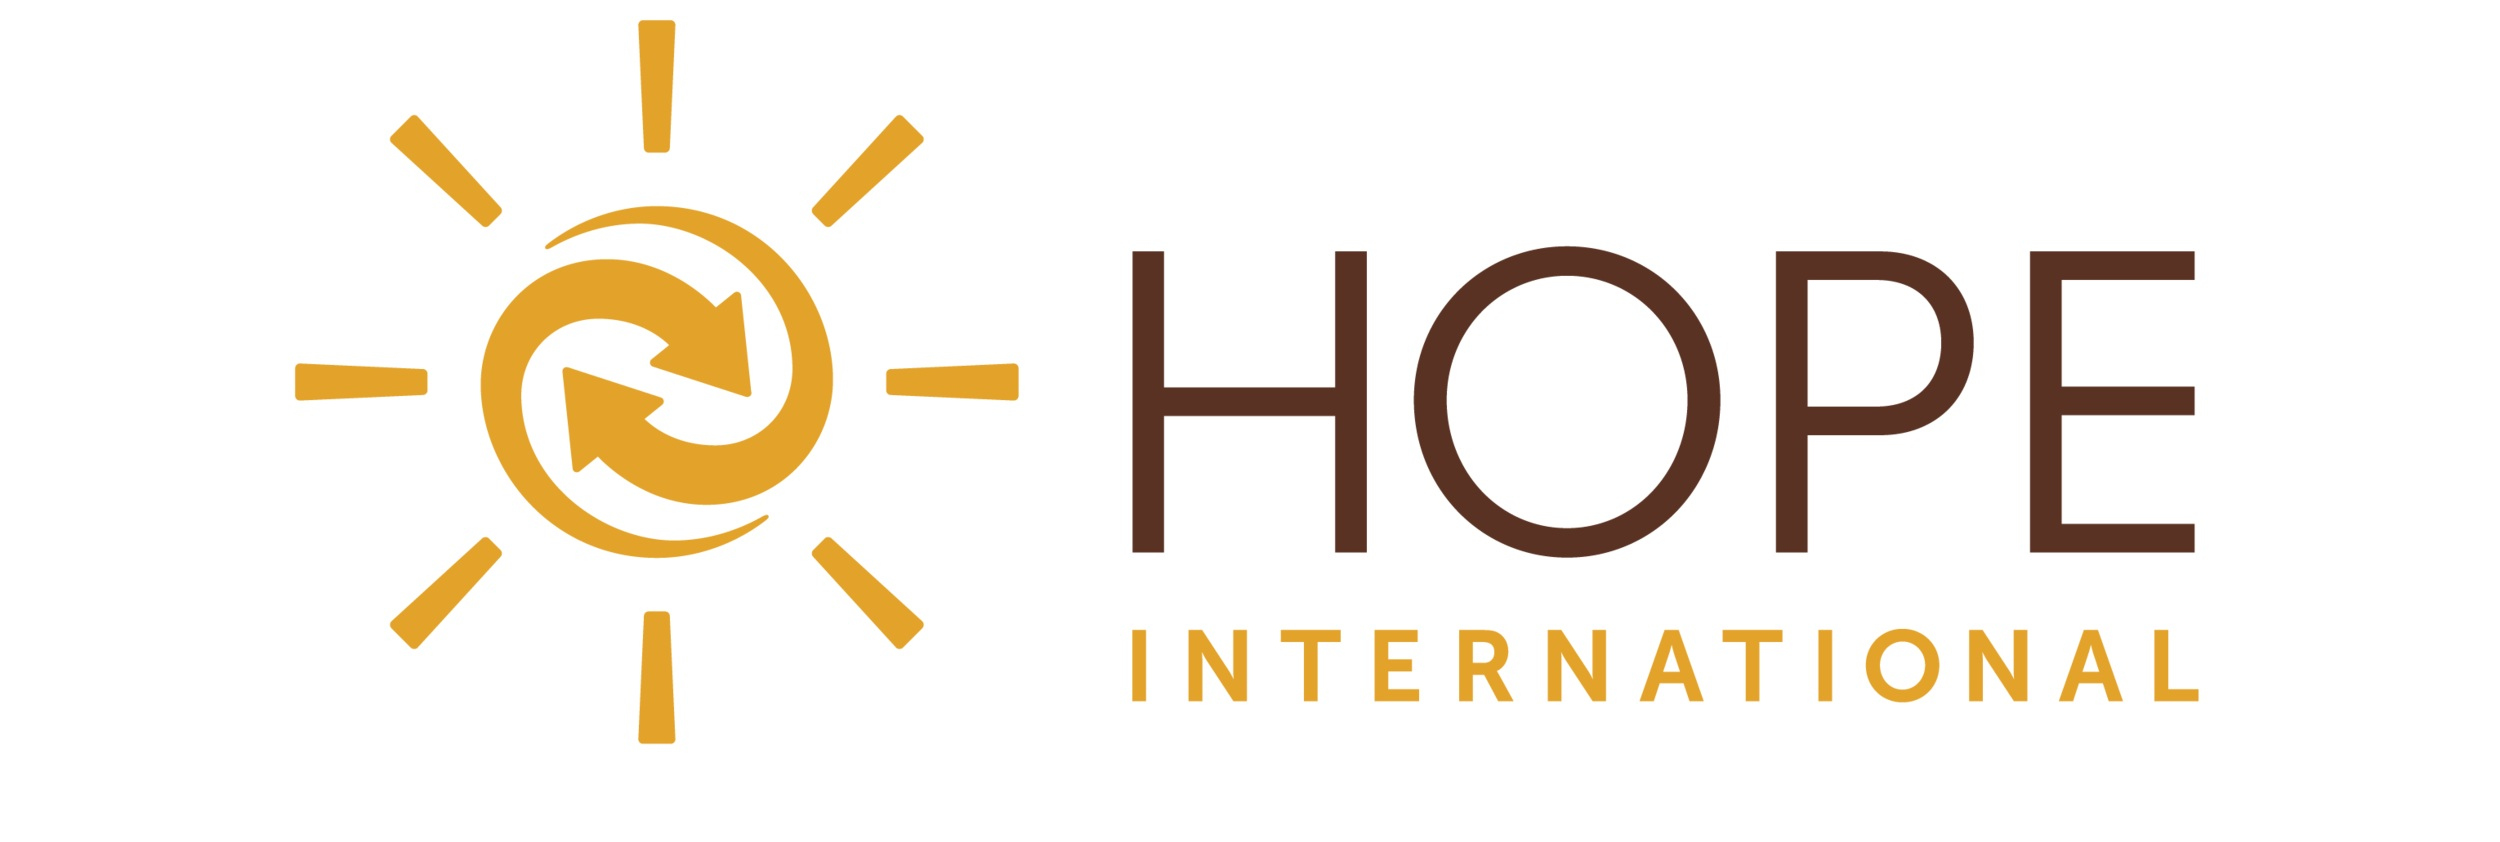 hopeinternational.PNG